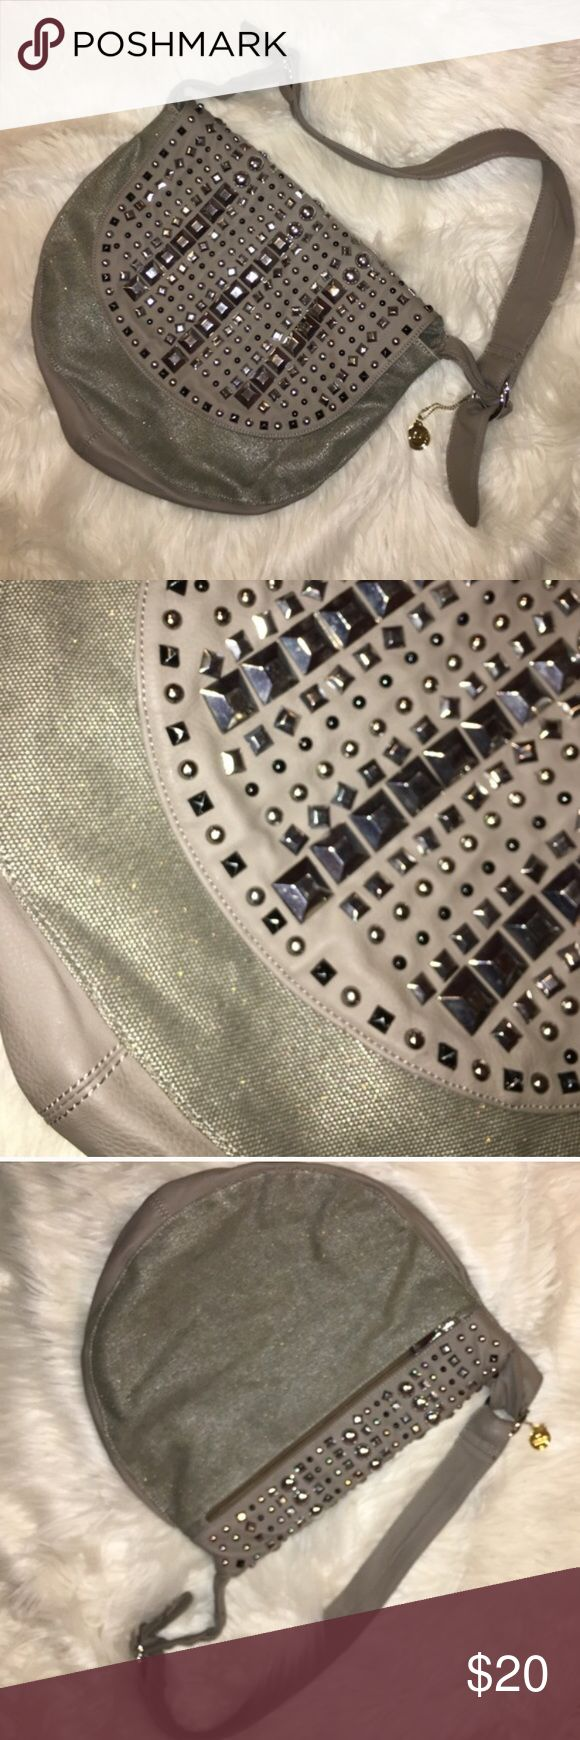 Big Buddha Rhinestone Handbag Great Shoulder Bag! Very Well Made, Thick Fabric. No Stones are Missing. Slight Shimmer. Has Adjustable Strap, but Not Long Enough for a Crossbody. Immaculate Inside w/out Stains ... Only Sign of Wear is on Straps. Bought @ DSW 💚 Big Buddha Bags Shoulder Bags